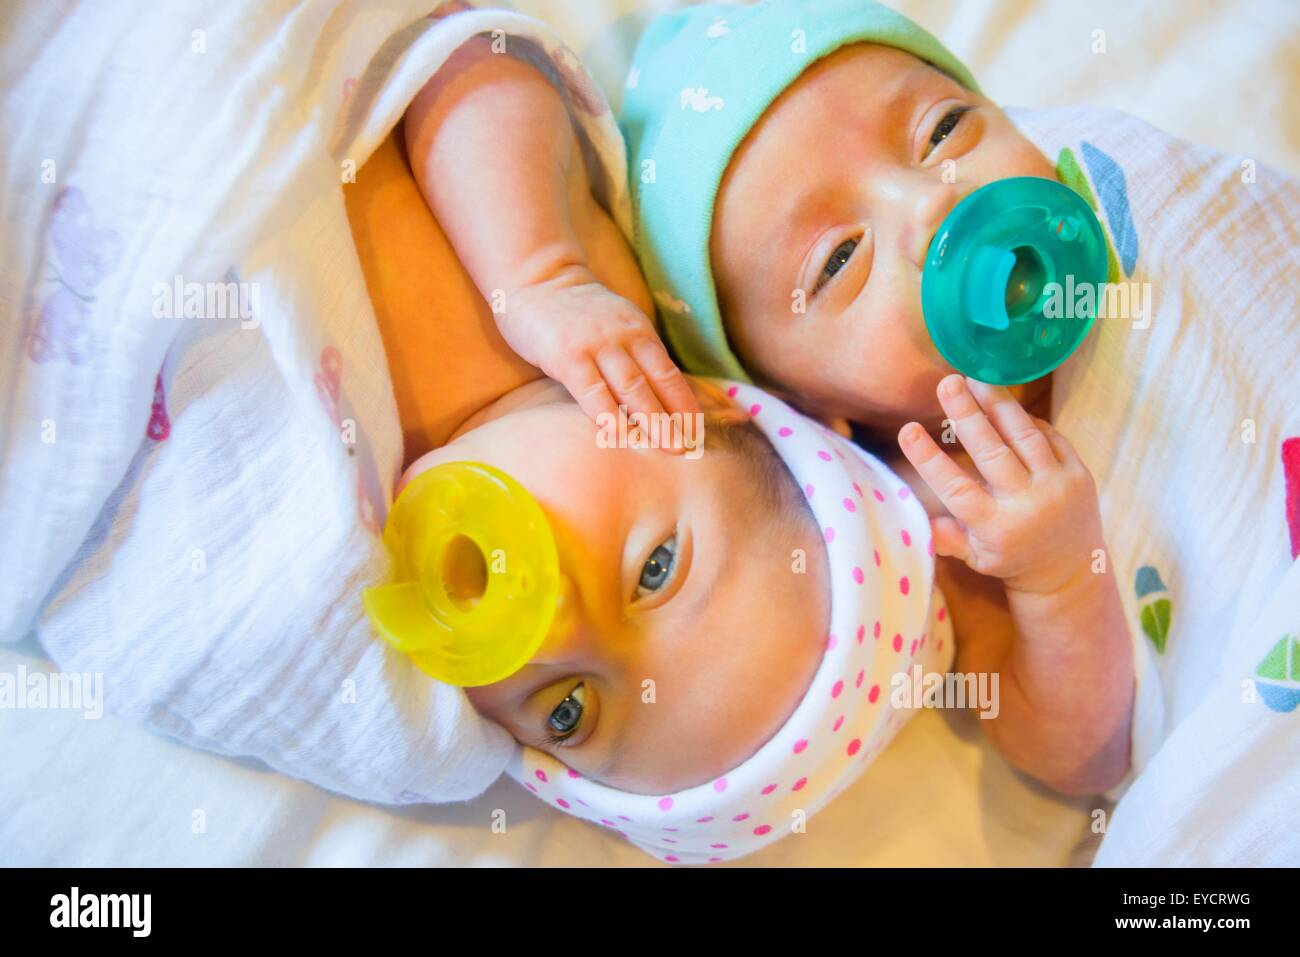 Twin baby sister and brother sucking on comforter - Stock Image